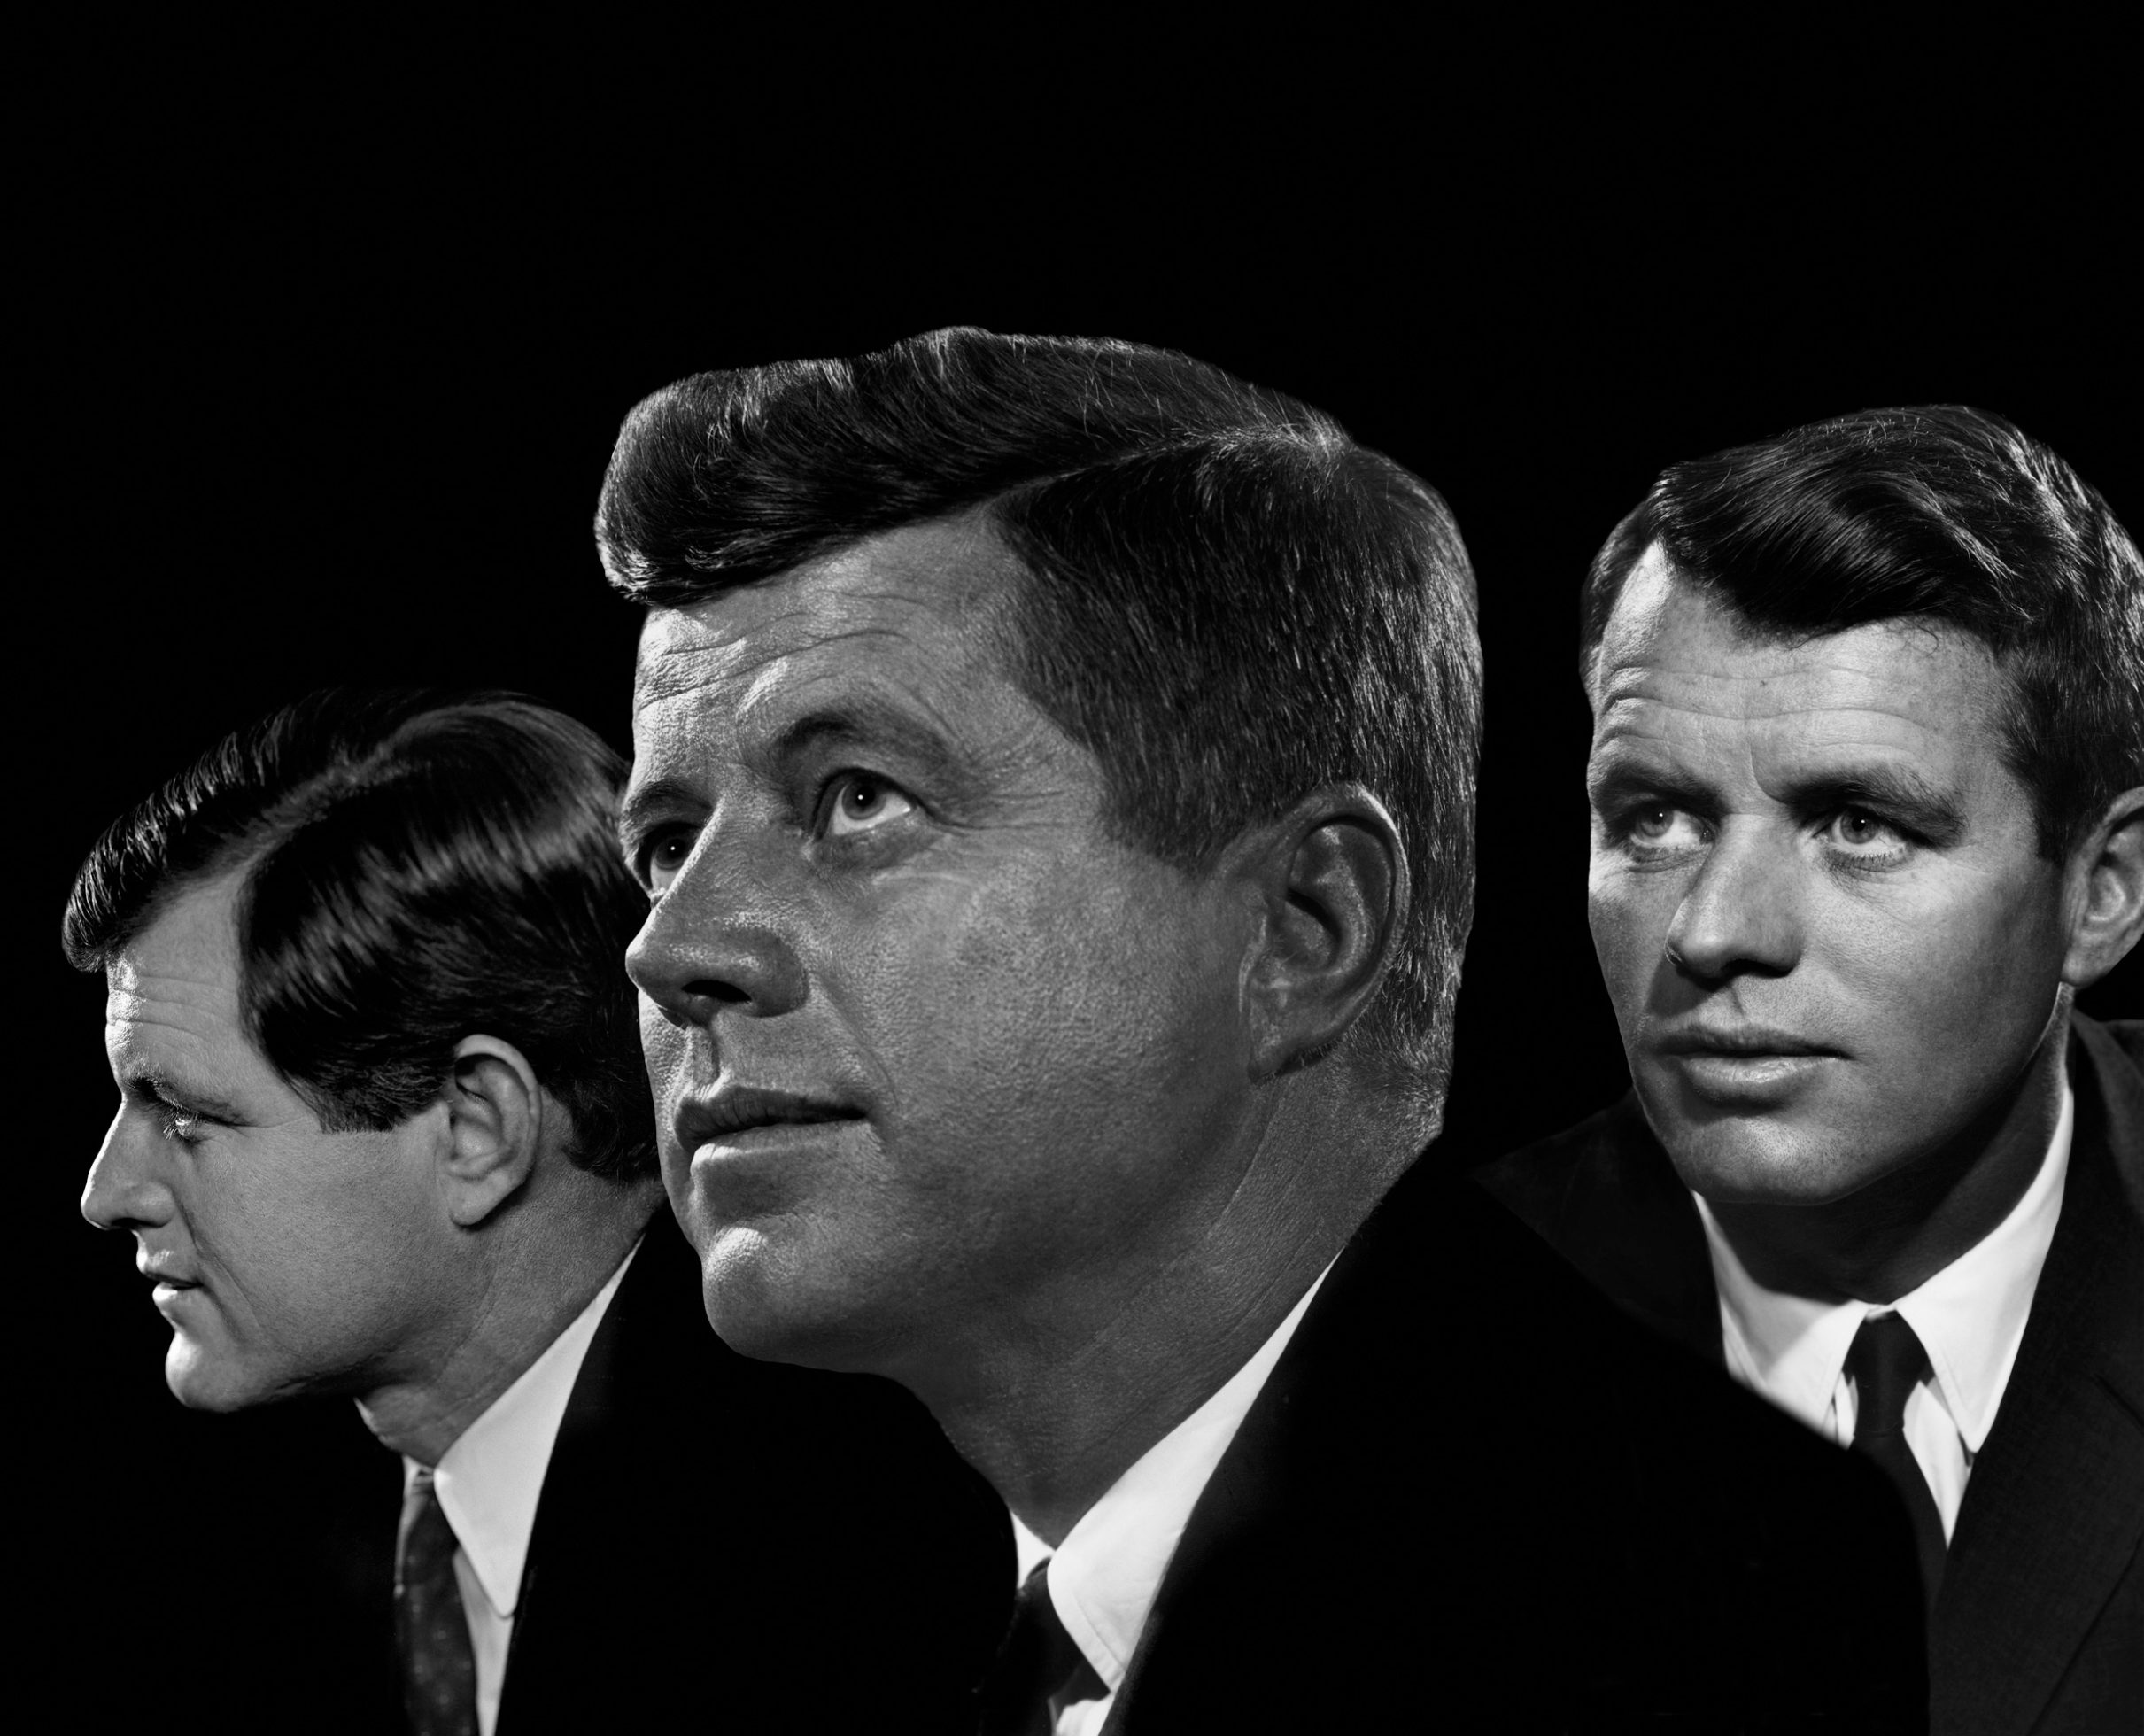 Fotó: Yousuf Karsh: Edward Kennedy, John F. Kennedy and Robert F. Kennedy, 1960 © Yousuf Karsh